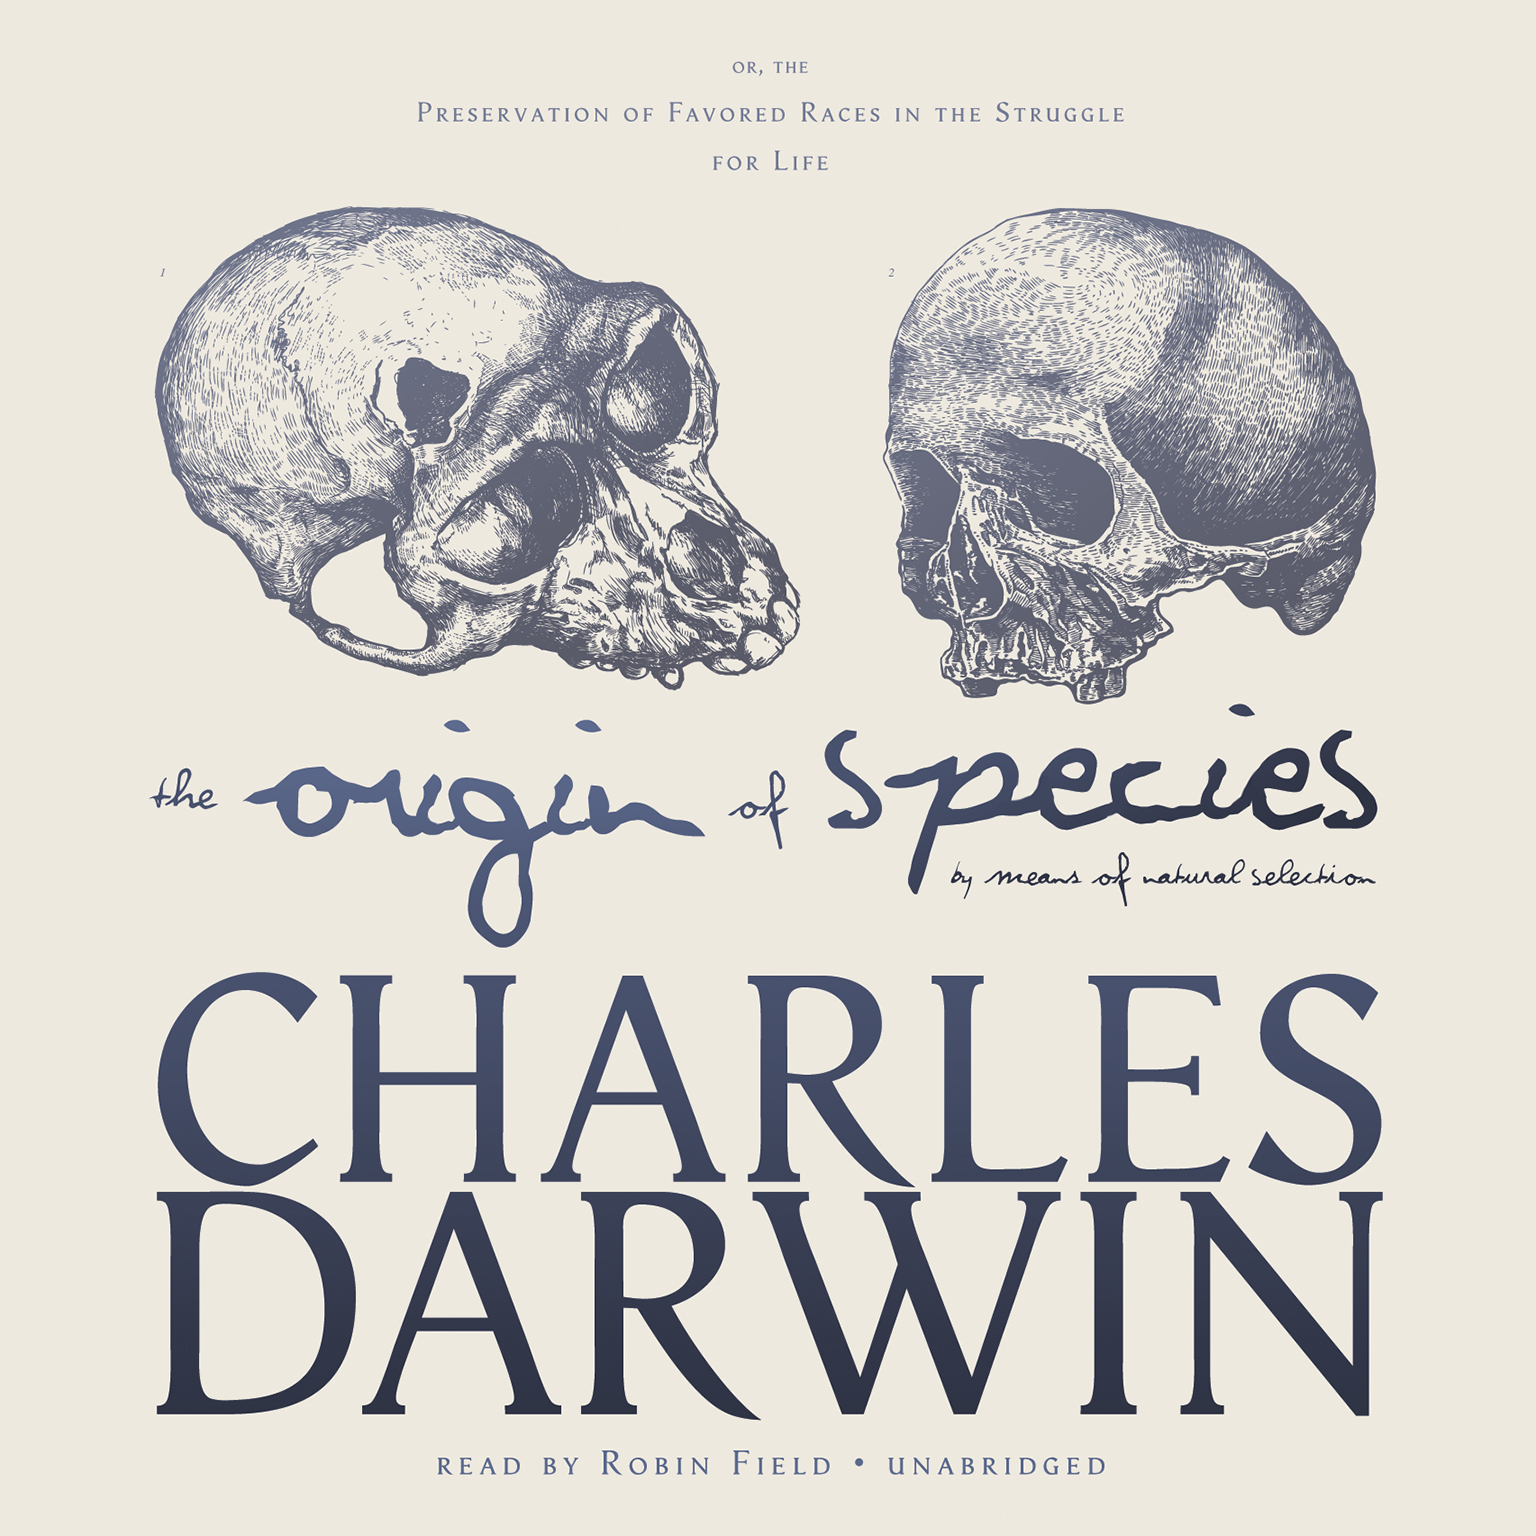 the origin of species by means of natural selection by charles darwin On the origin of species by means of natural selection, or the preservation of favoured races in the struggle for life by charles darwin contents.